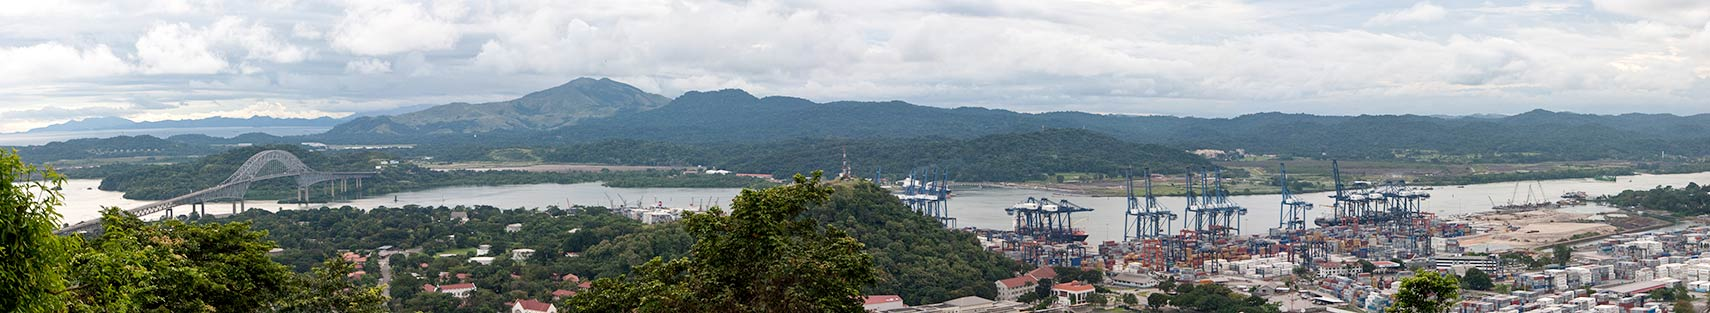 Panorama of Pacific entrance of the Panama Canal